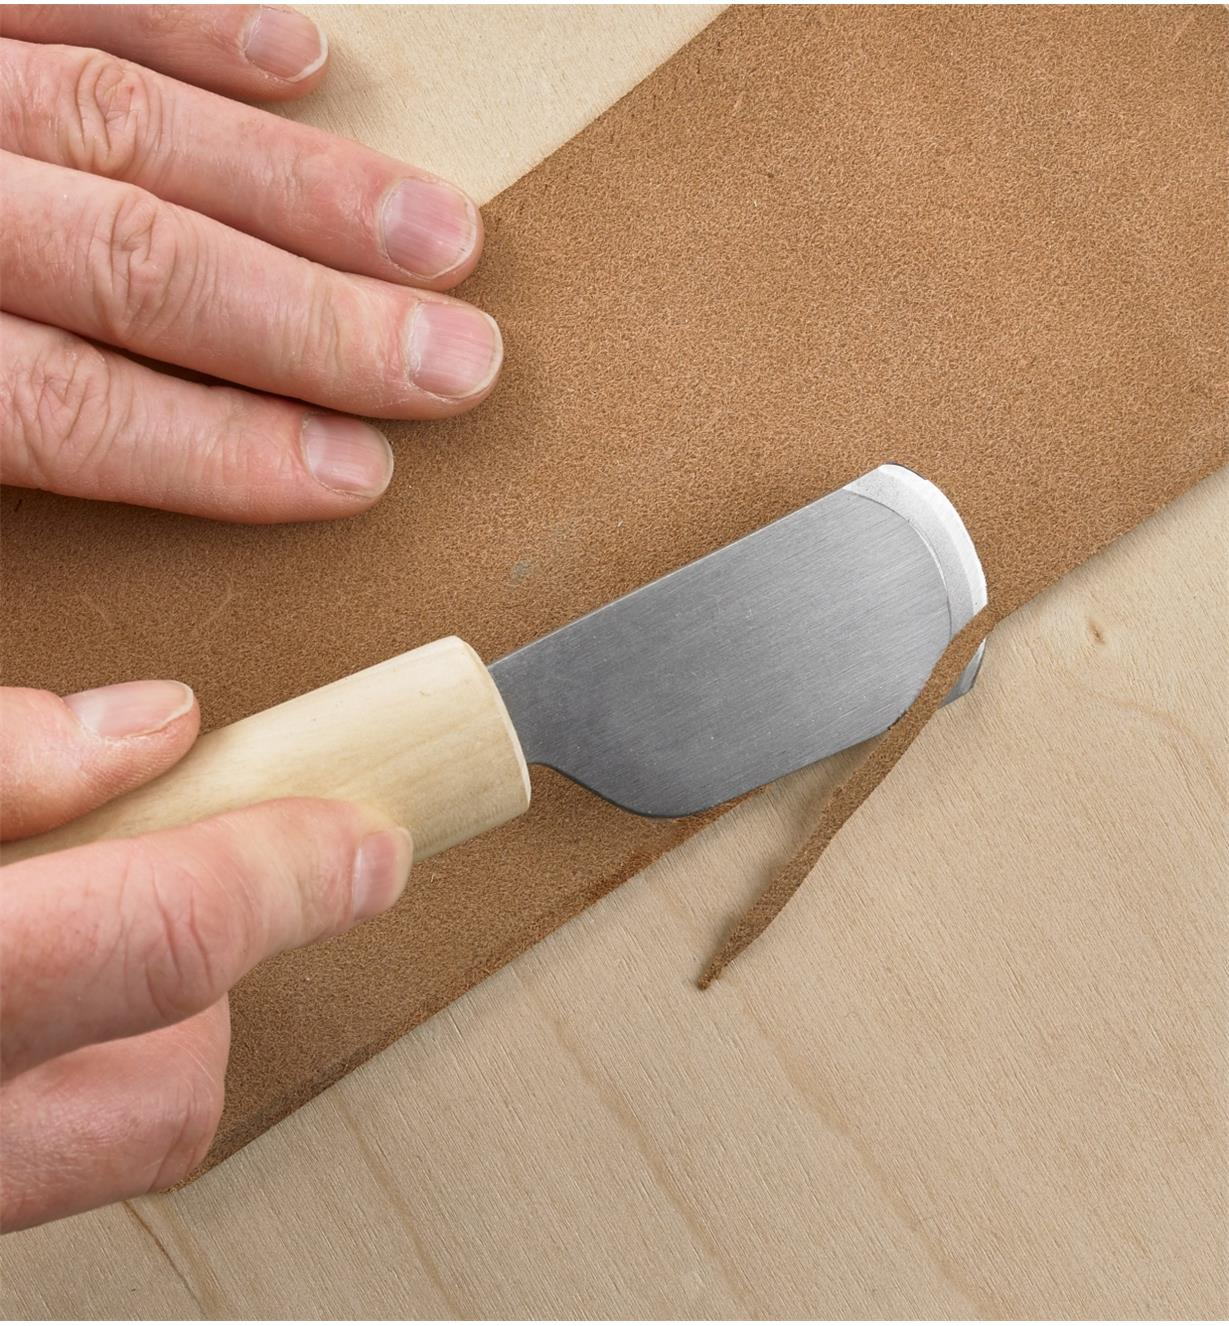 60J0360 - Skiving Knife